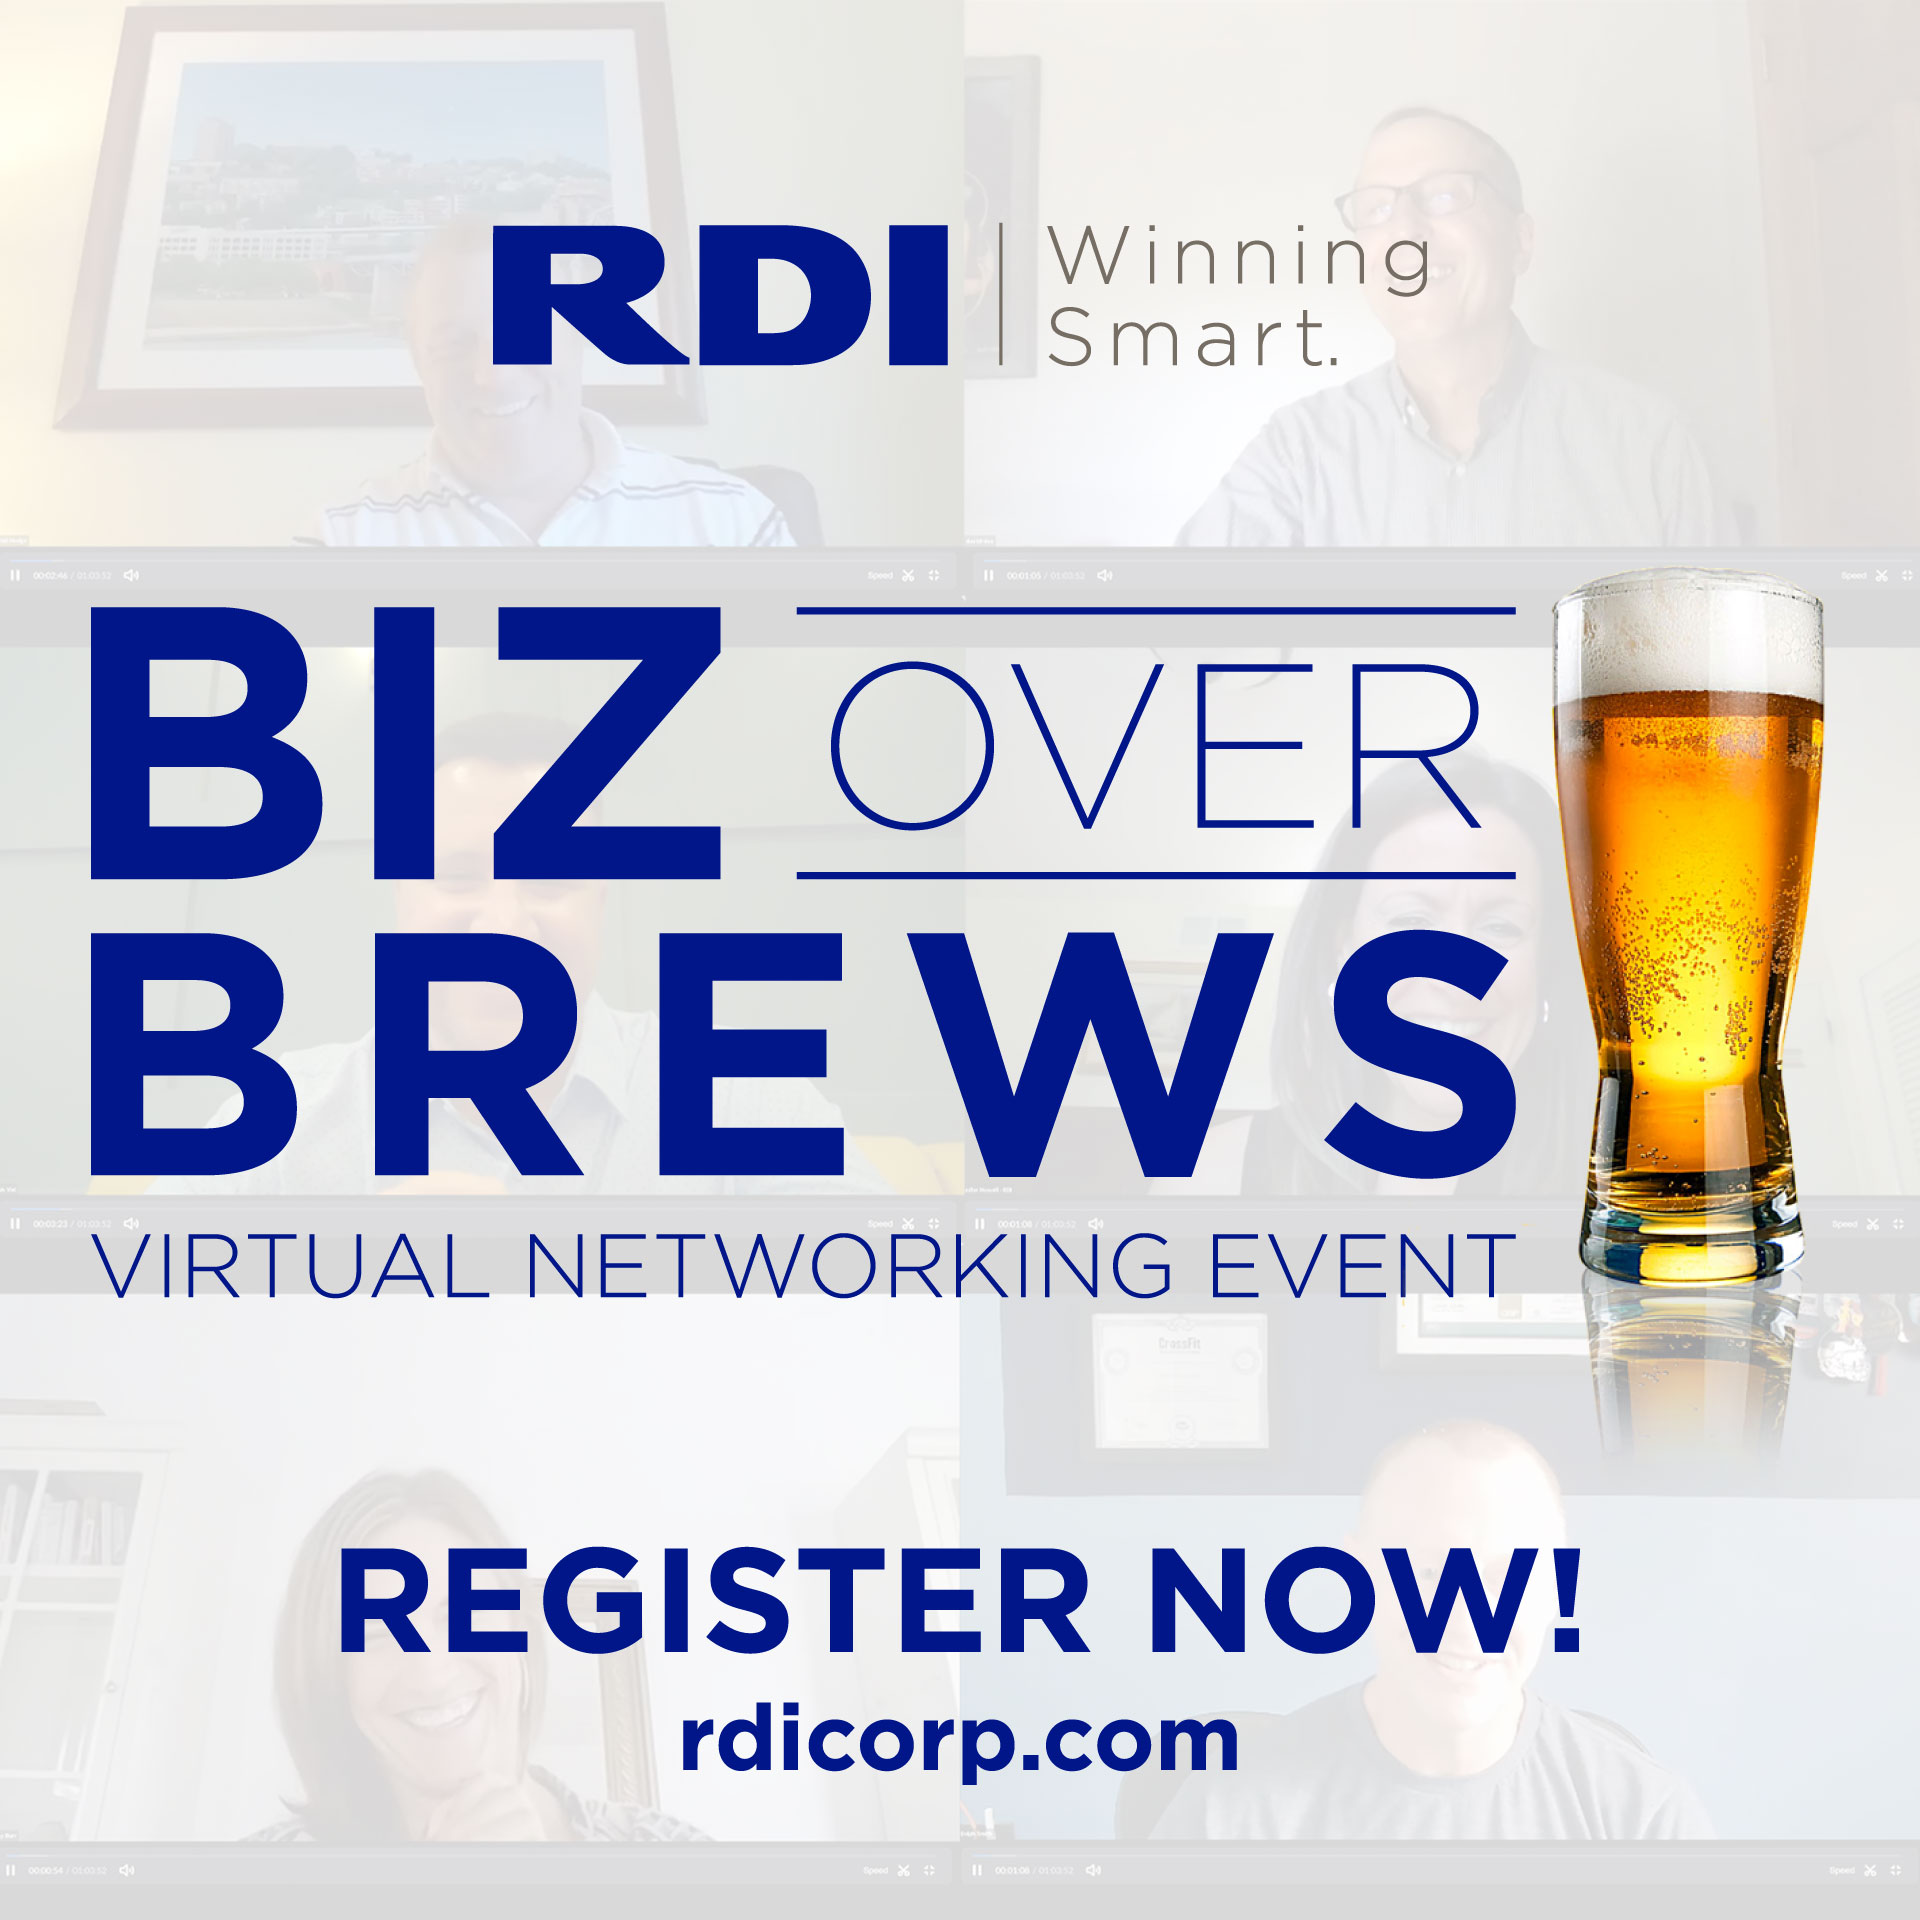 RDI Biz Over Brews Virtual Networking Event - Winning Smart with Remote Teams